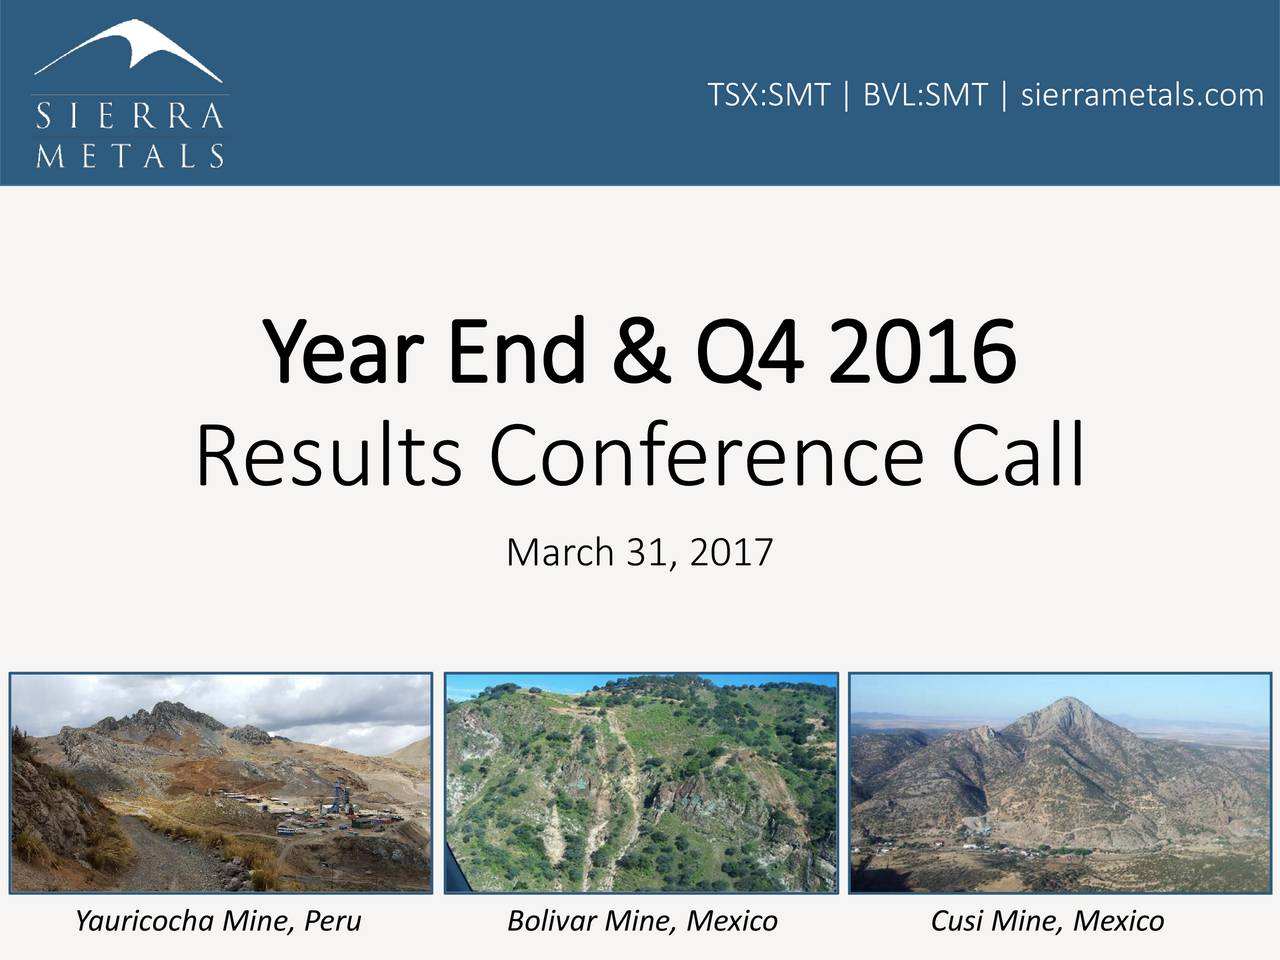 Year End & Q4 2016 Results Conference Call March 31, 2017